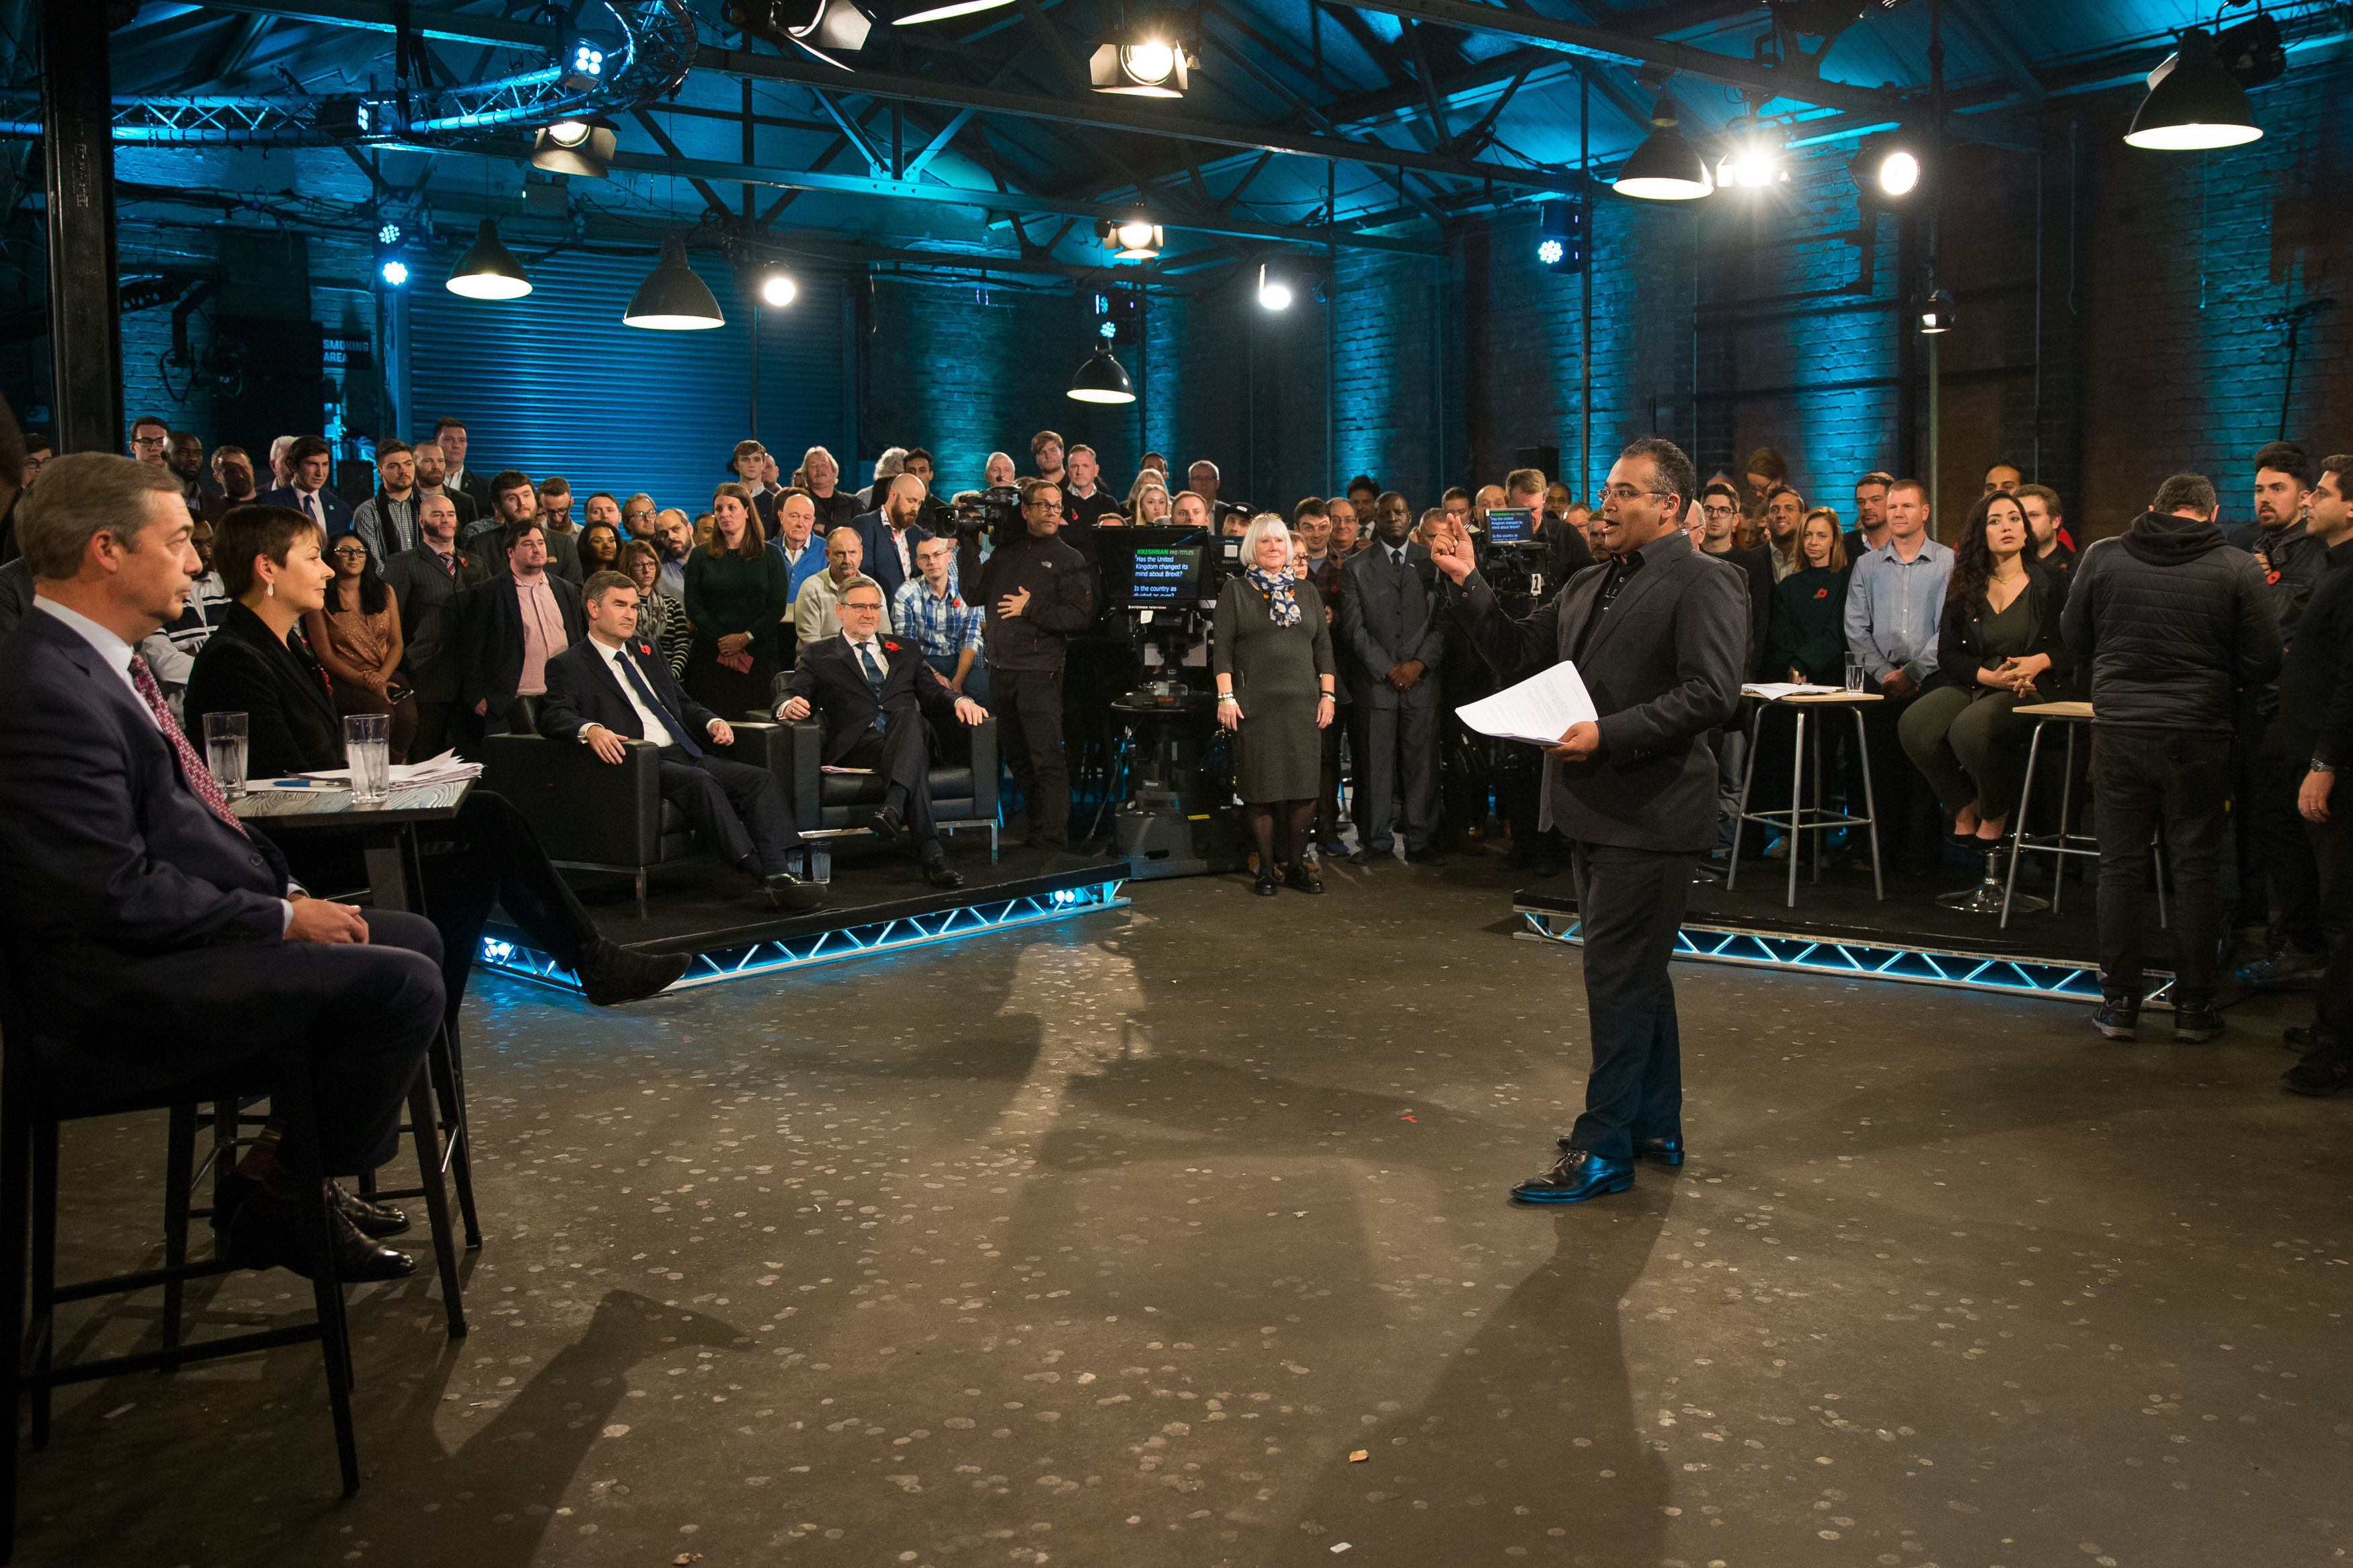 Channel 4's Brexit debate at Custard factory, Birmingham